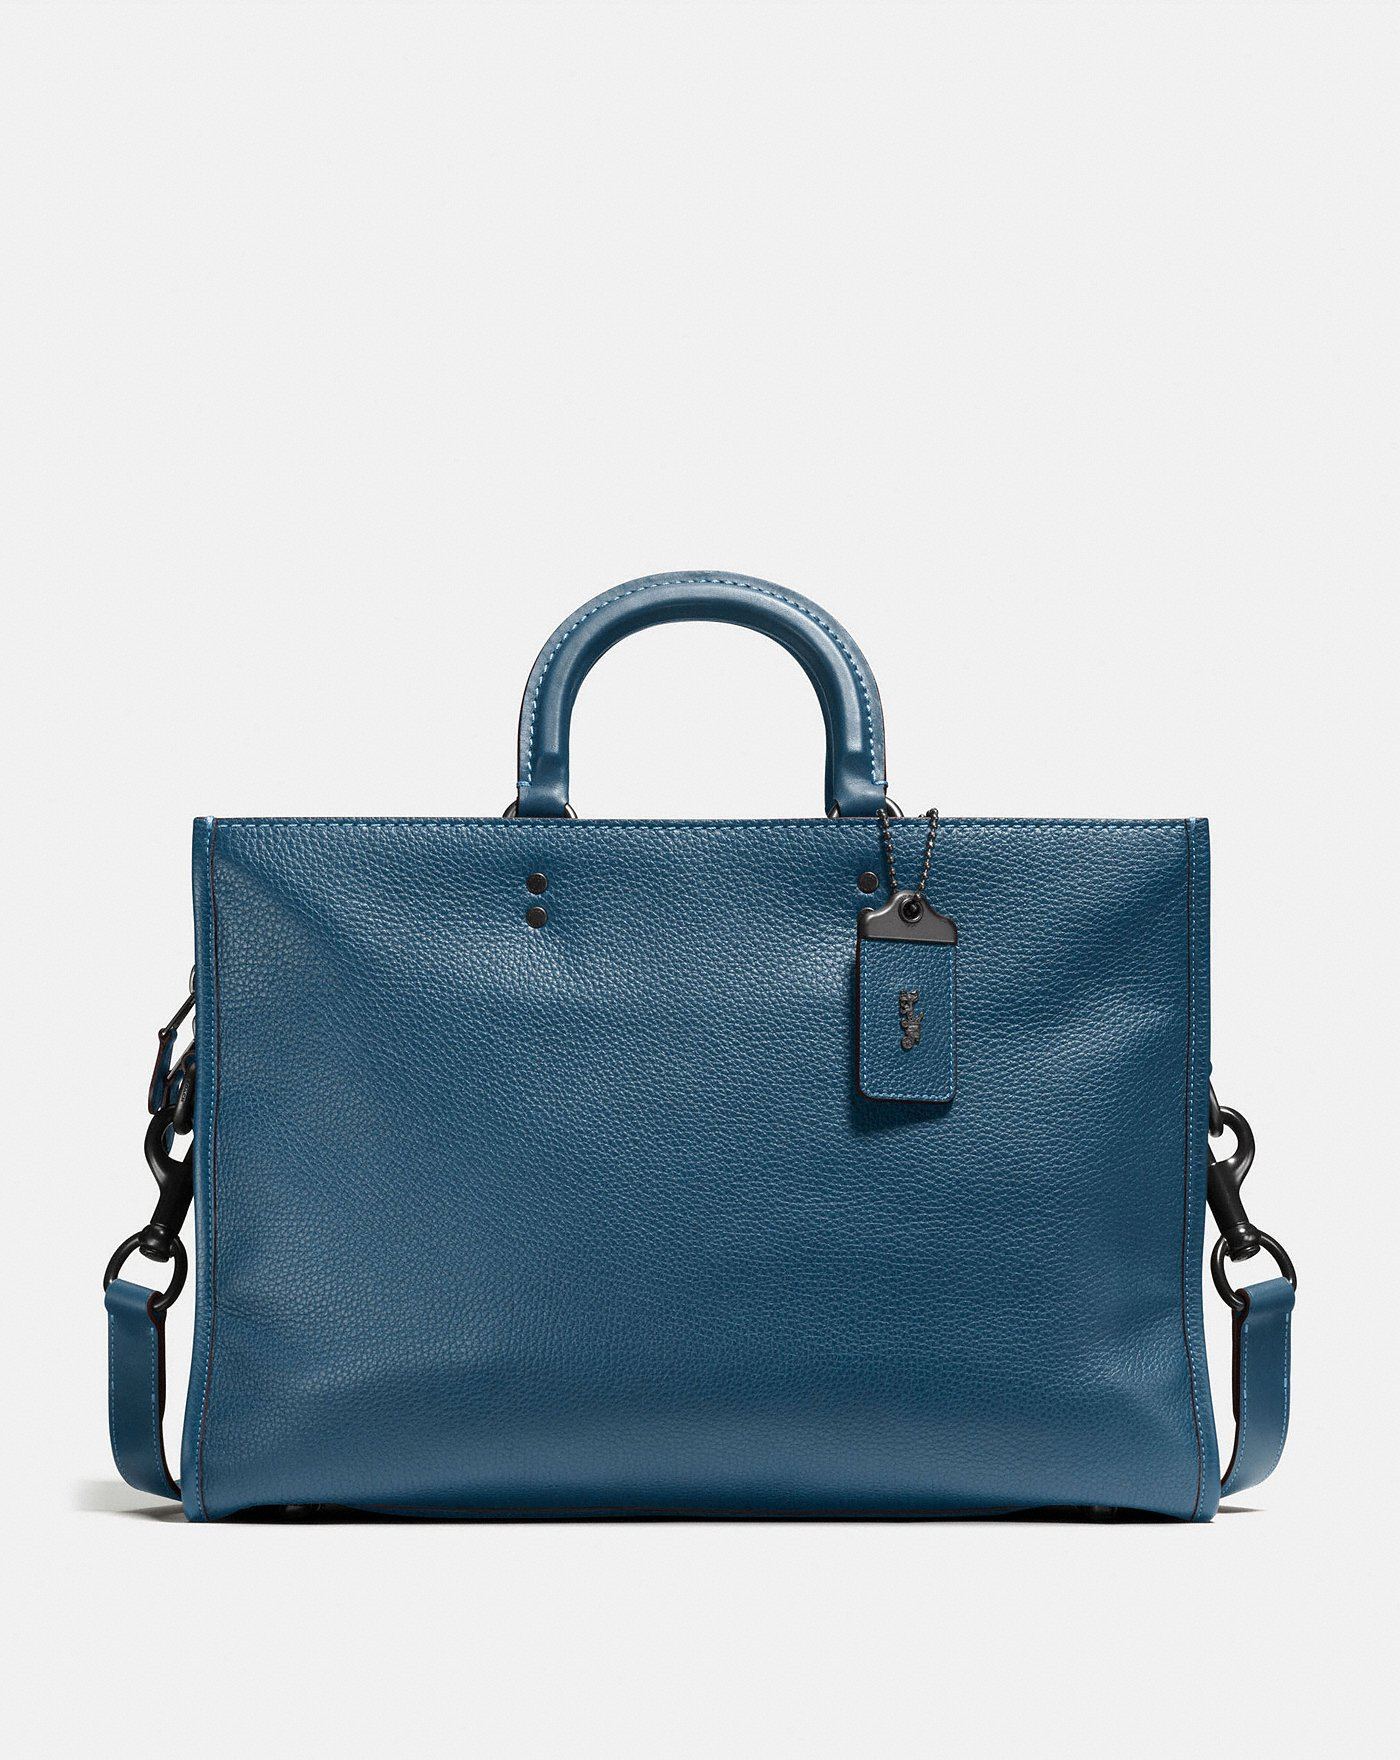 Mens Leather Bags Ebay